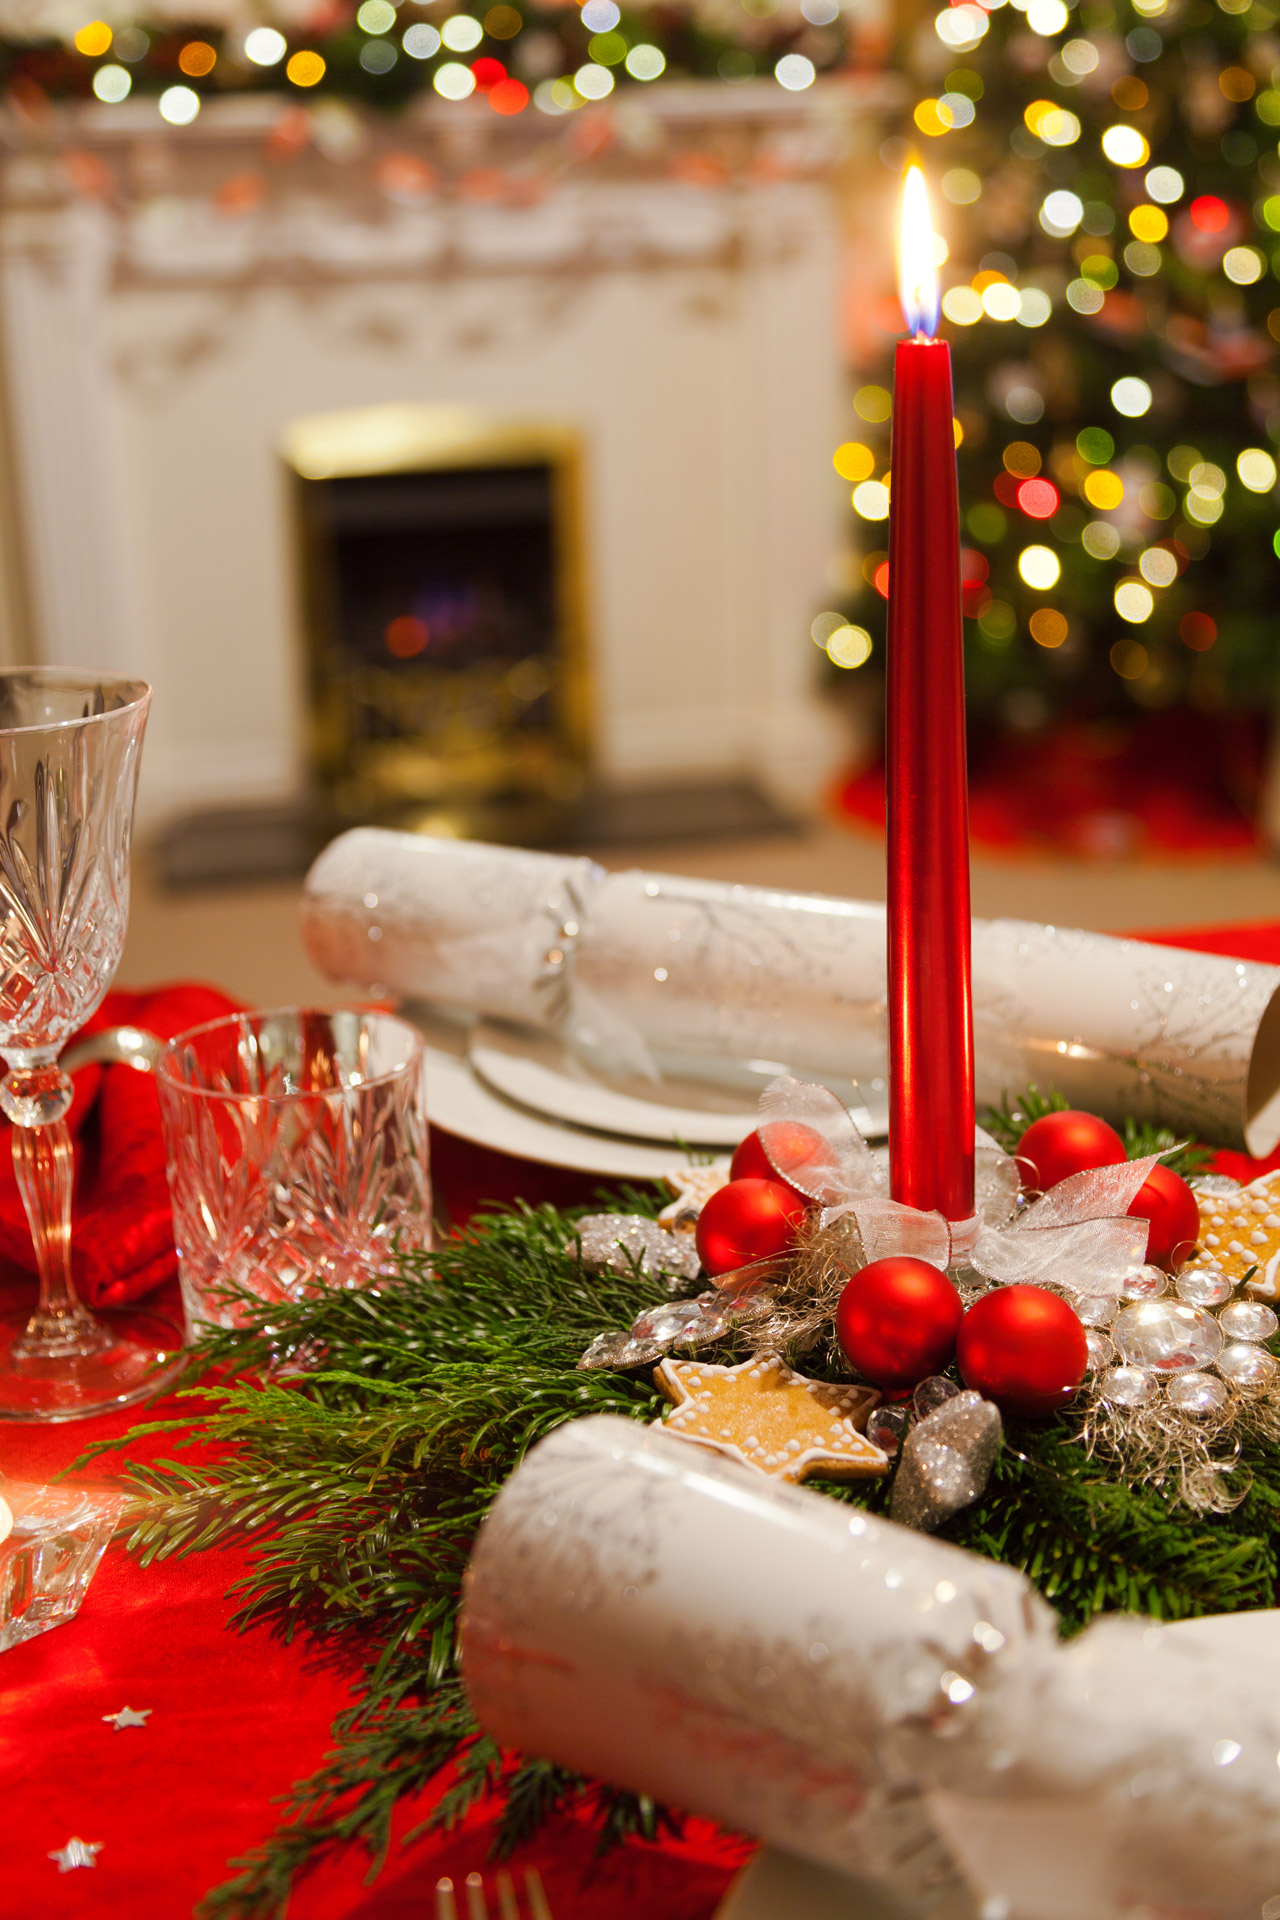 Christmas Table Free Stock Photo Public Domain Pictures